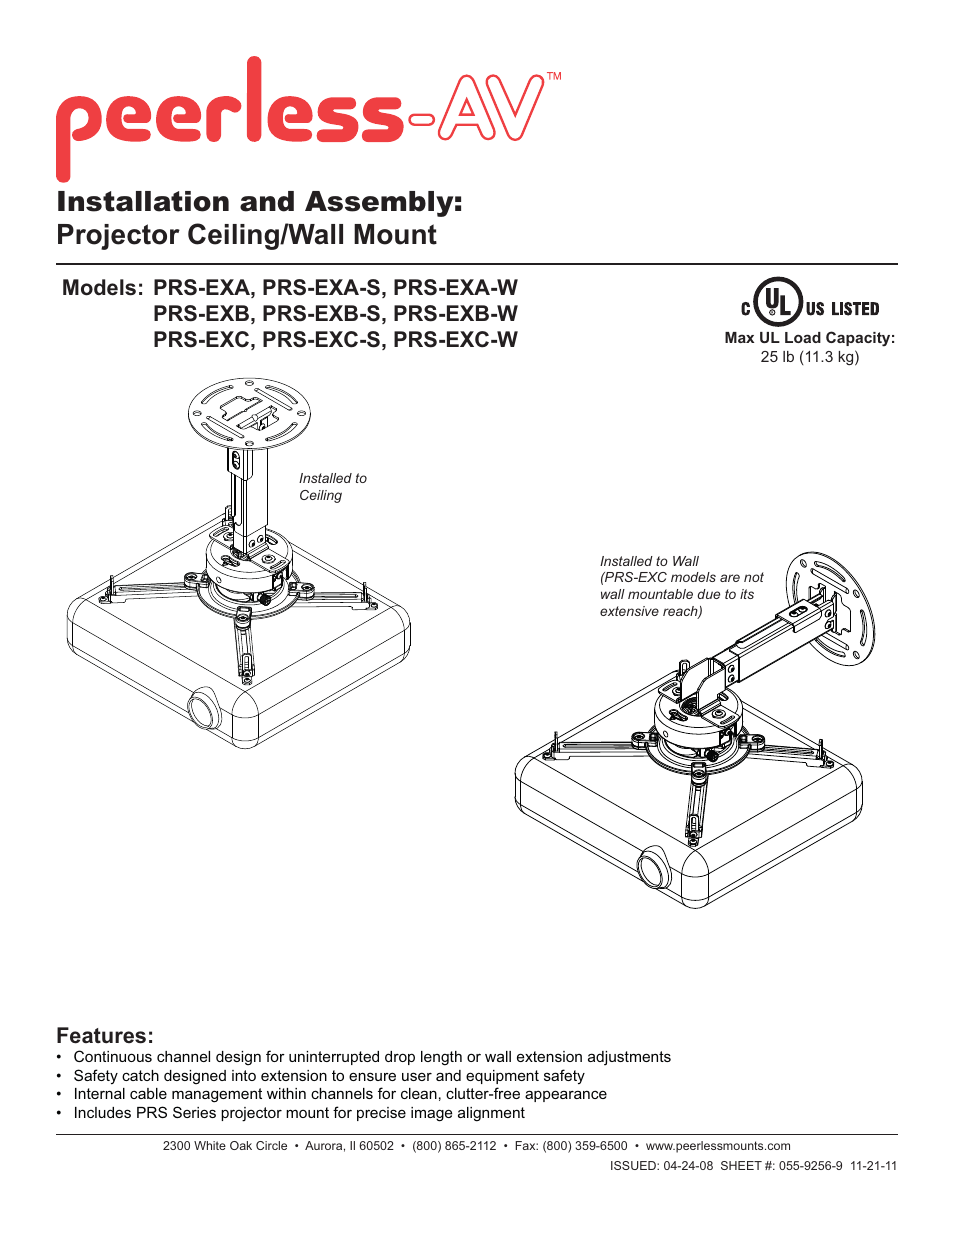 Peerless-AV PRS-EXC-W - Installation User Manual | 13 pages